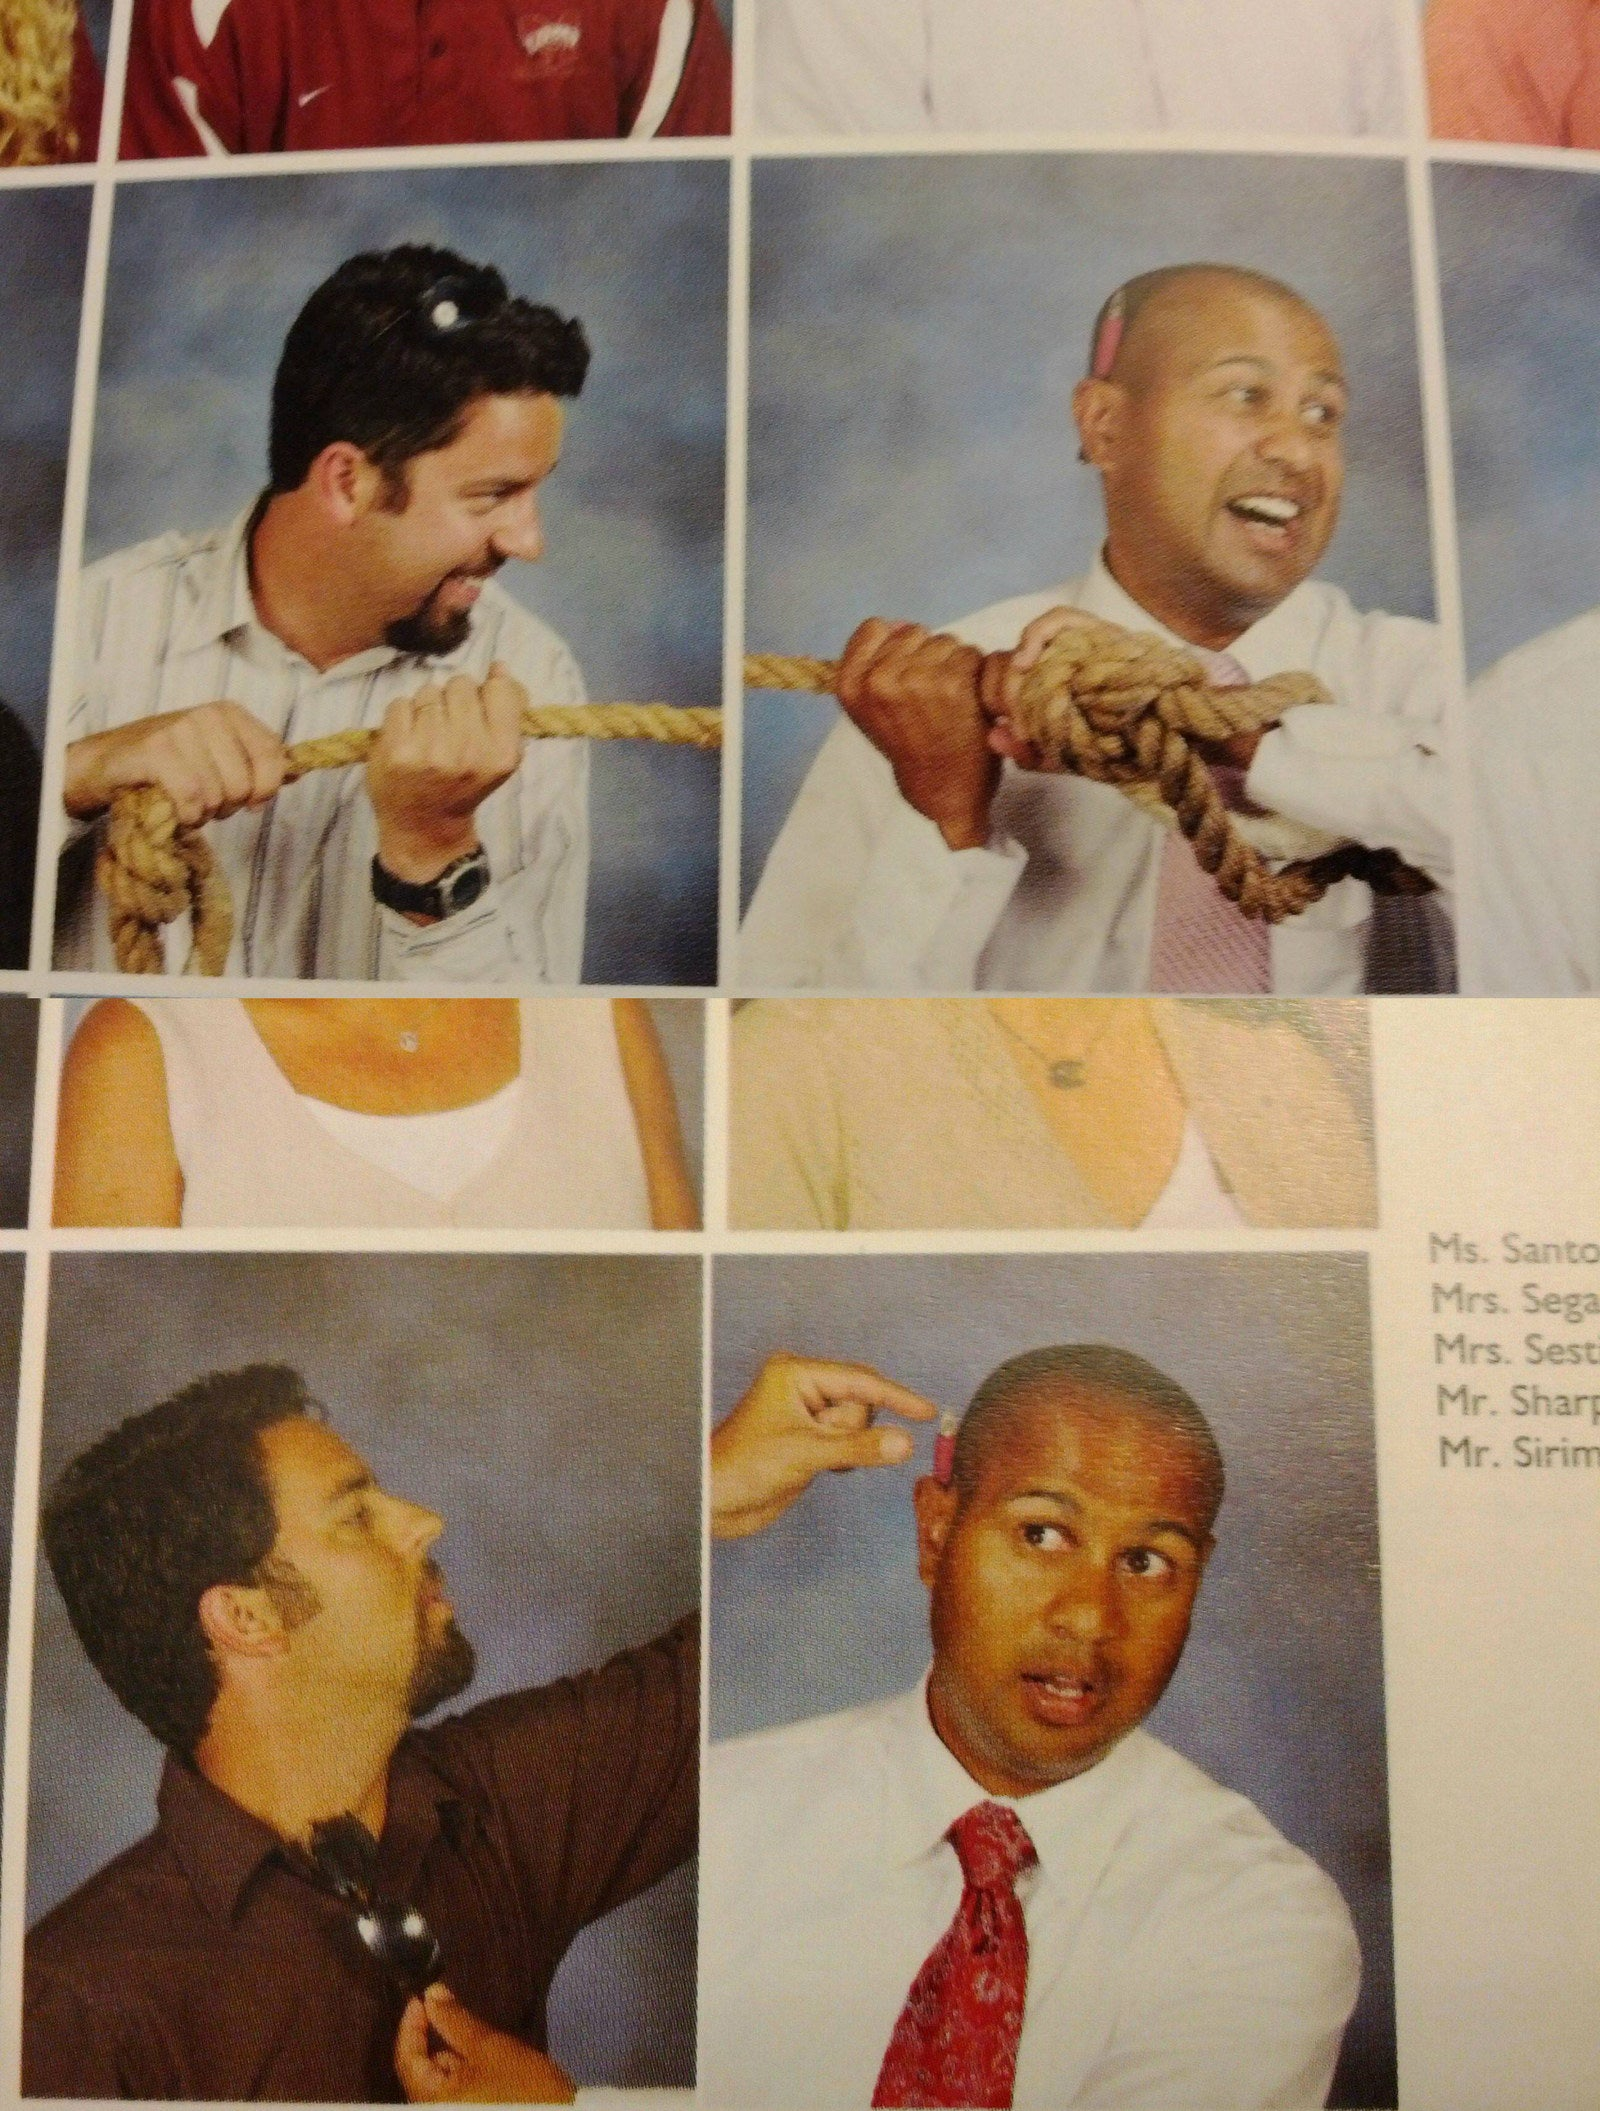 These colleagues with a running streak for best matching Yearbook photos: